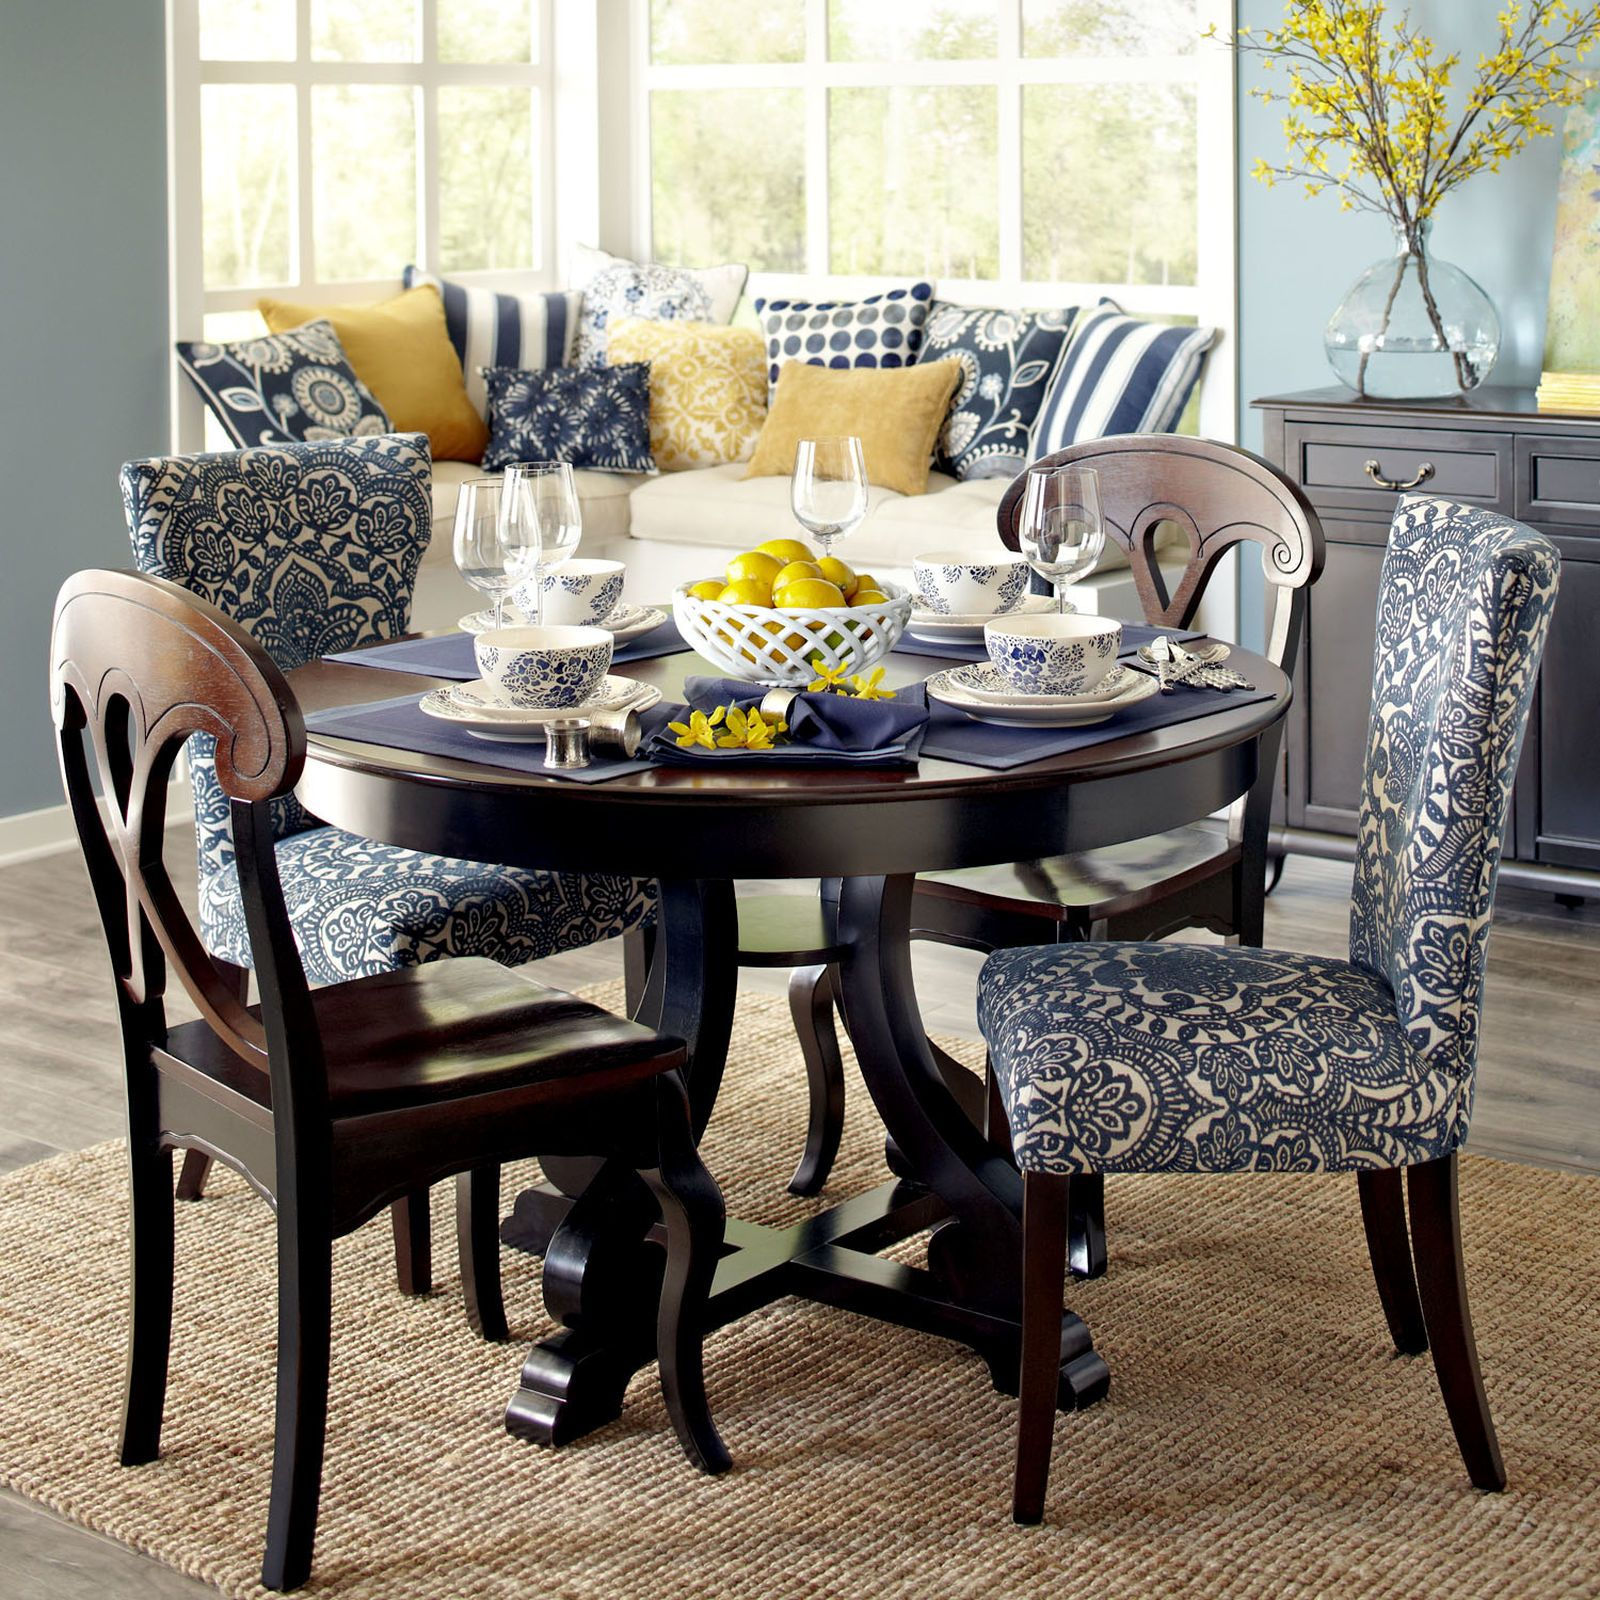 Marchella Rubbed Black Dining Tables Pier 1 Imports With Images Dining Room Furniture Sets Dining Table Black Dining Room Furniture